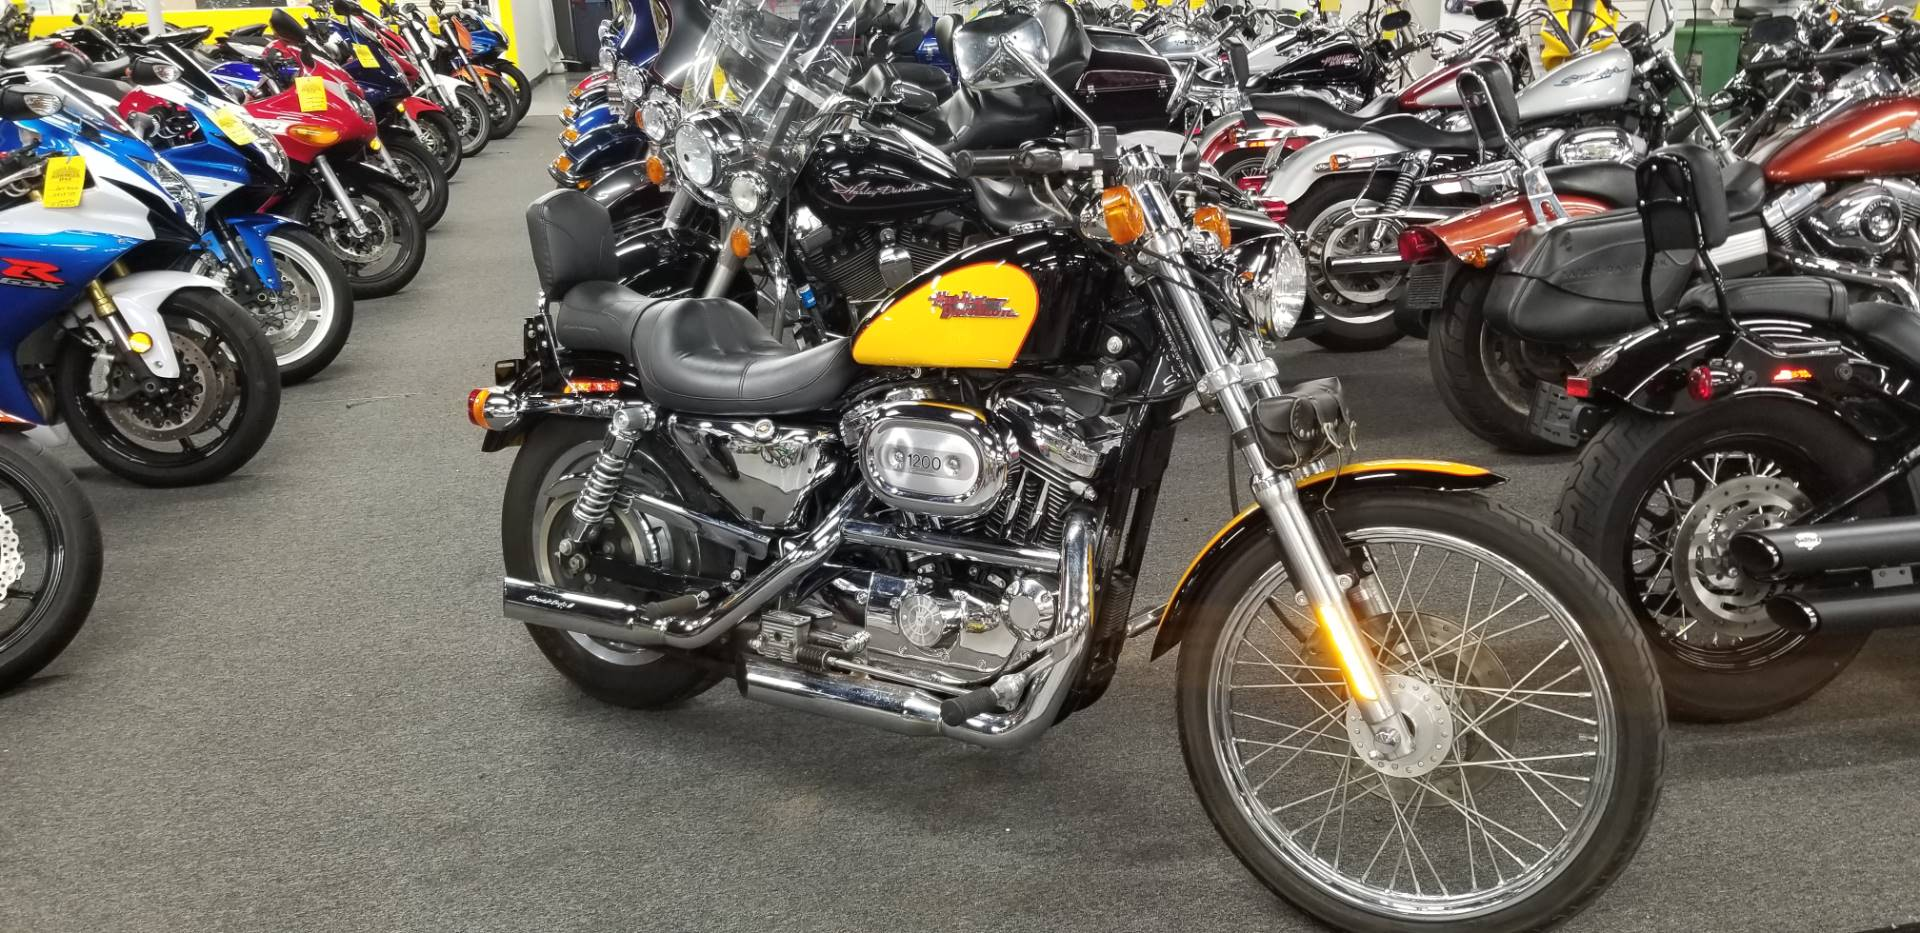 Used 2001 Harley Davidson Xl 1200c Sportster 1200 Custom Motorcycles In Oakdale Ny Stock Number Um 1k117051